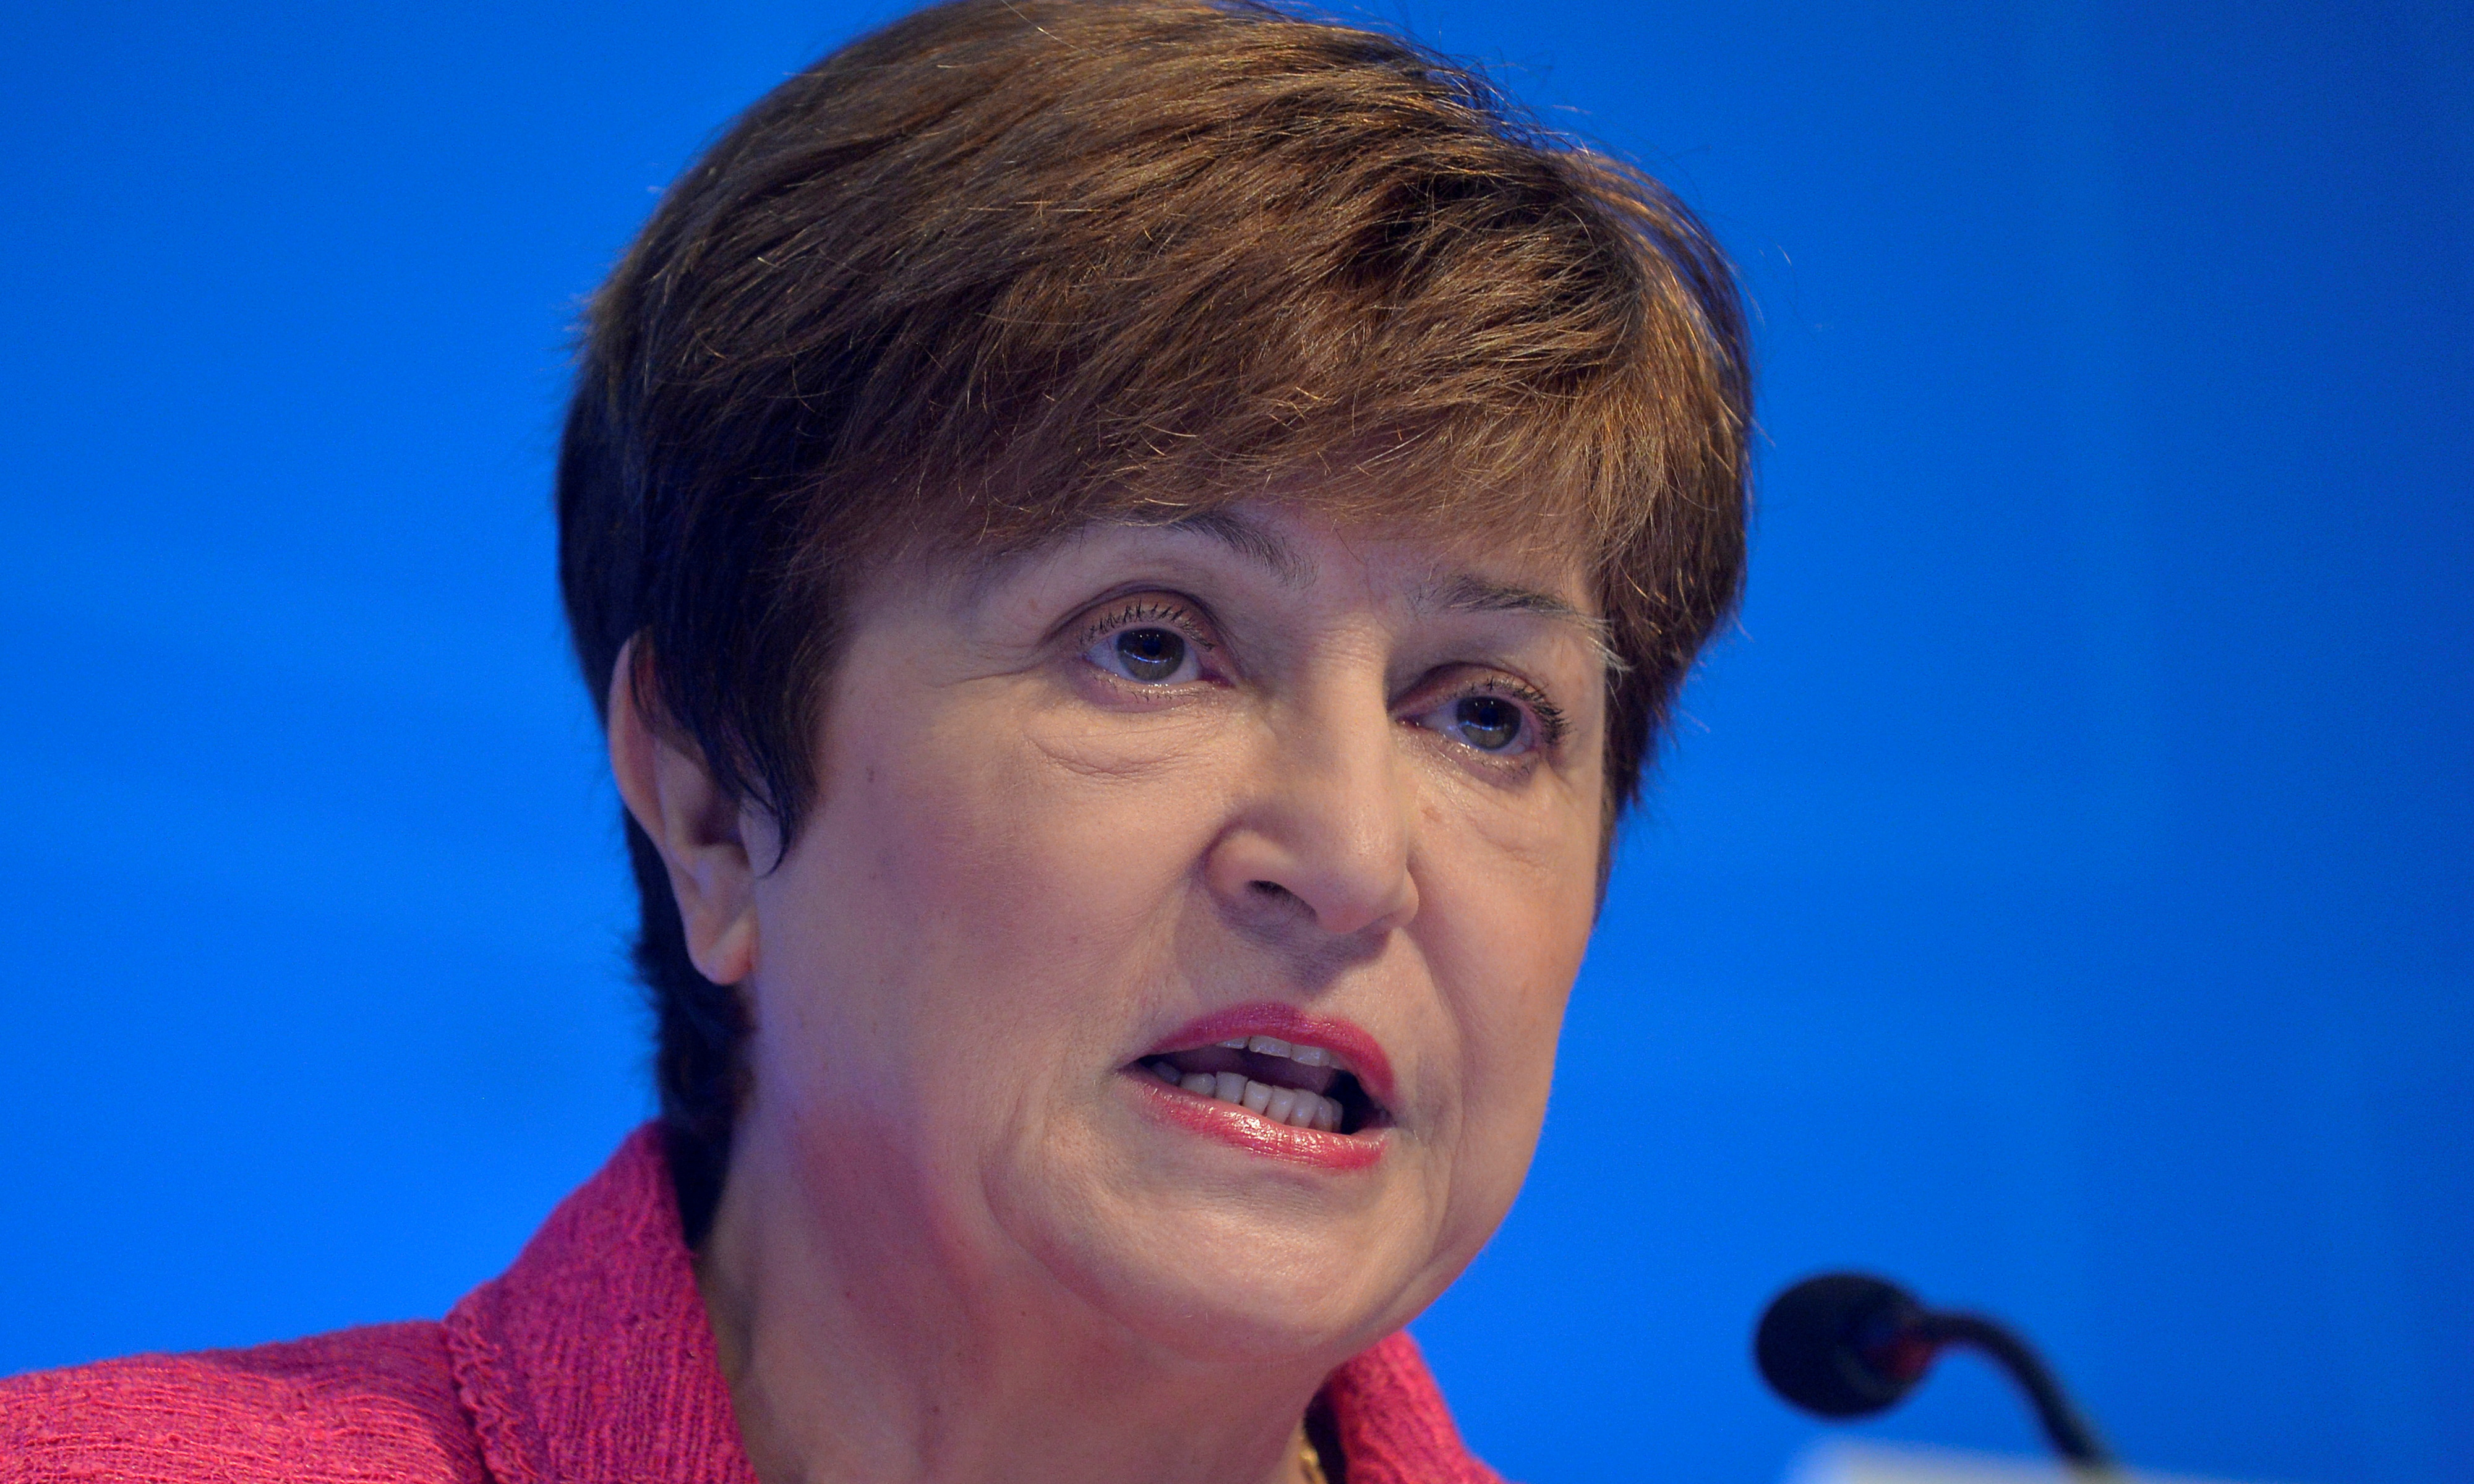 International Monetary Fund (IMF) Managing Director Kristalina Georgieva makes remarks at an opening news conference during the IMF and World Bank's 2019 Annual Fall Meetings of finance ministers and bank governors, in Washington, U.S., October 17, 2019.   REUTERS/Mike Theiler/File Photo